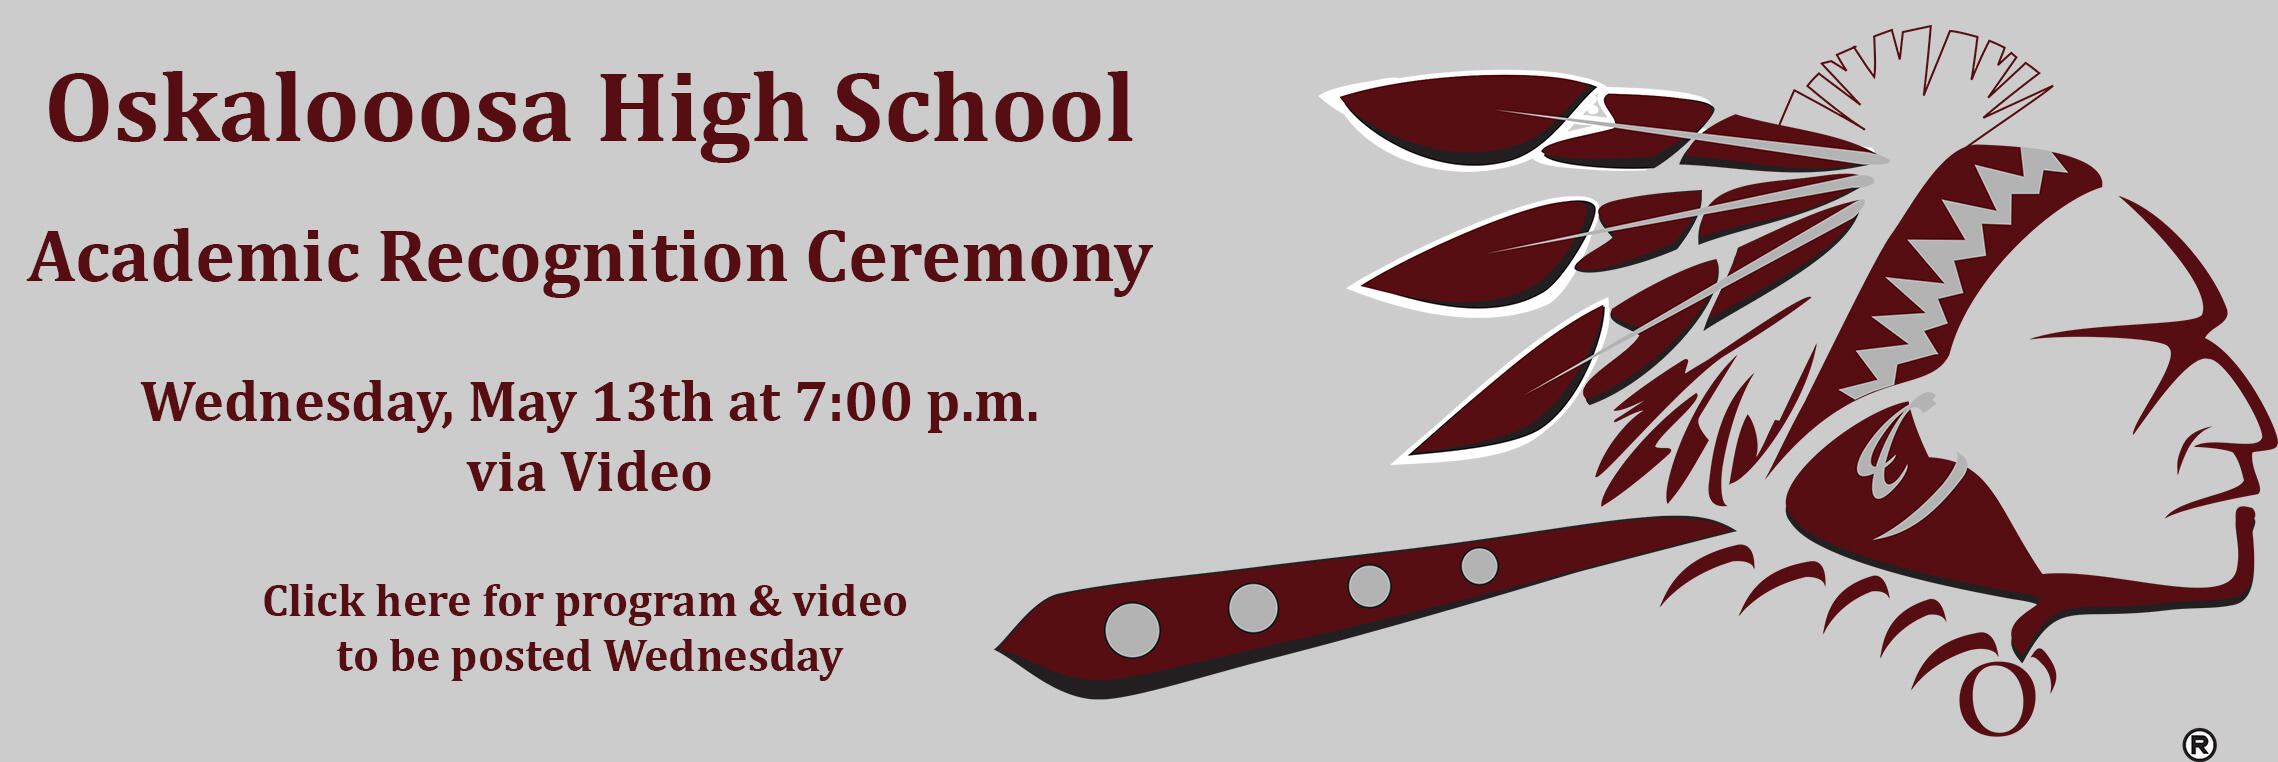 Oskaloosa High School Academic Recognition Ceremony May 13, 7:00 p.m. Click here for the program and video to come.